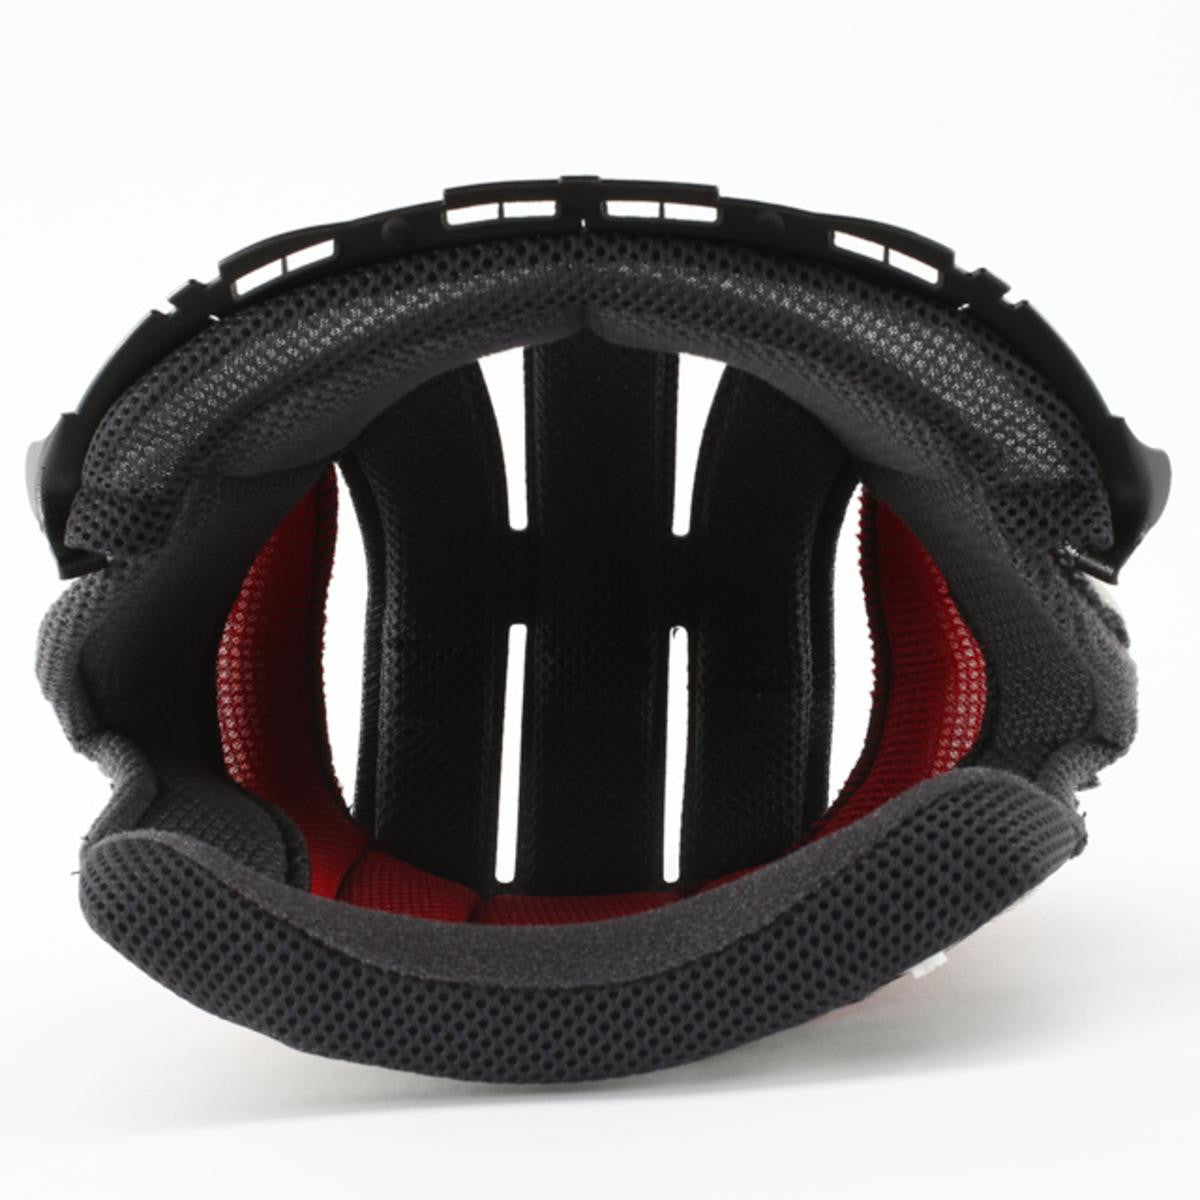 Shoei Hornet X2 Center Pad